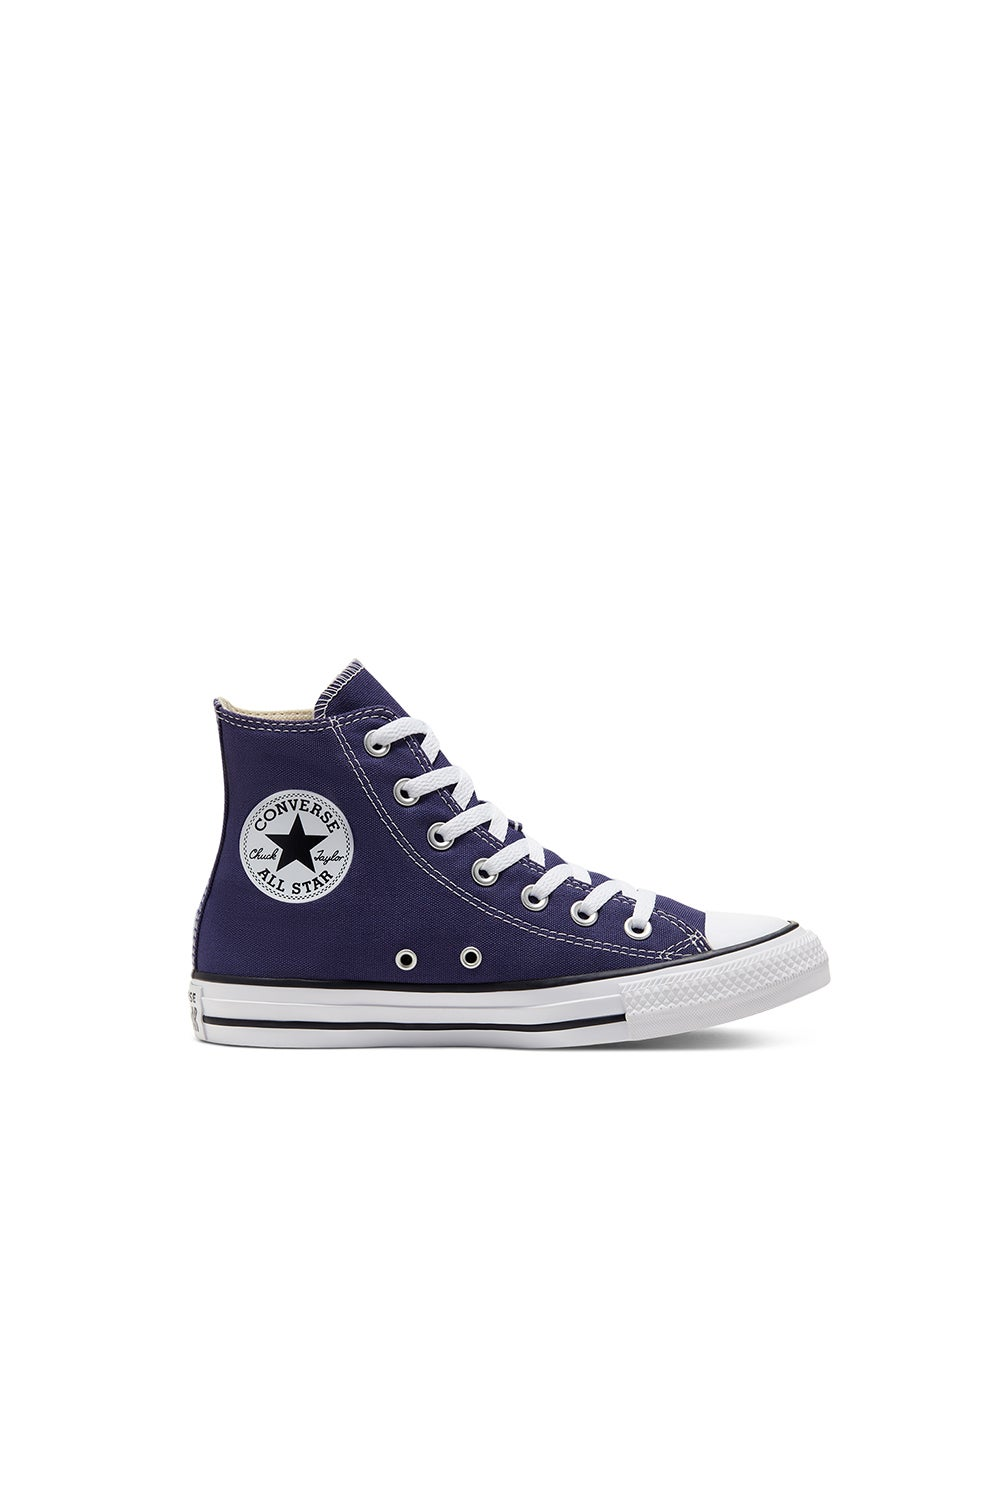 Converse Chuck Taylor All Star Hi Top Japanese Eggplant